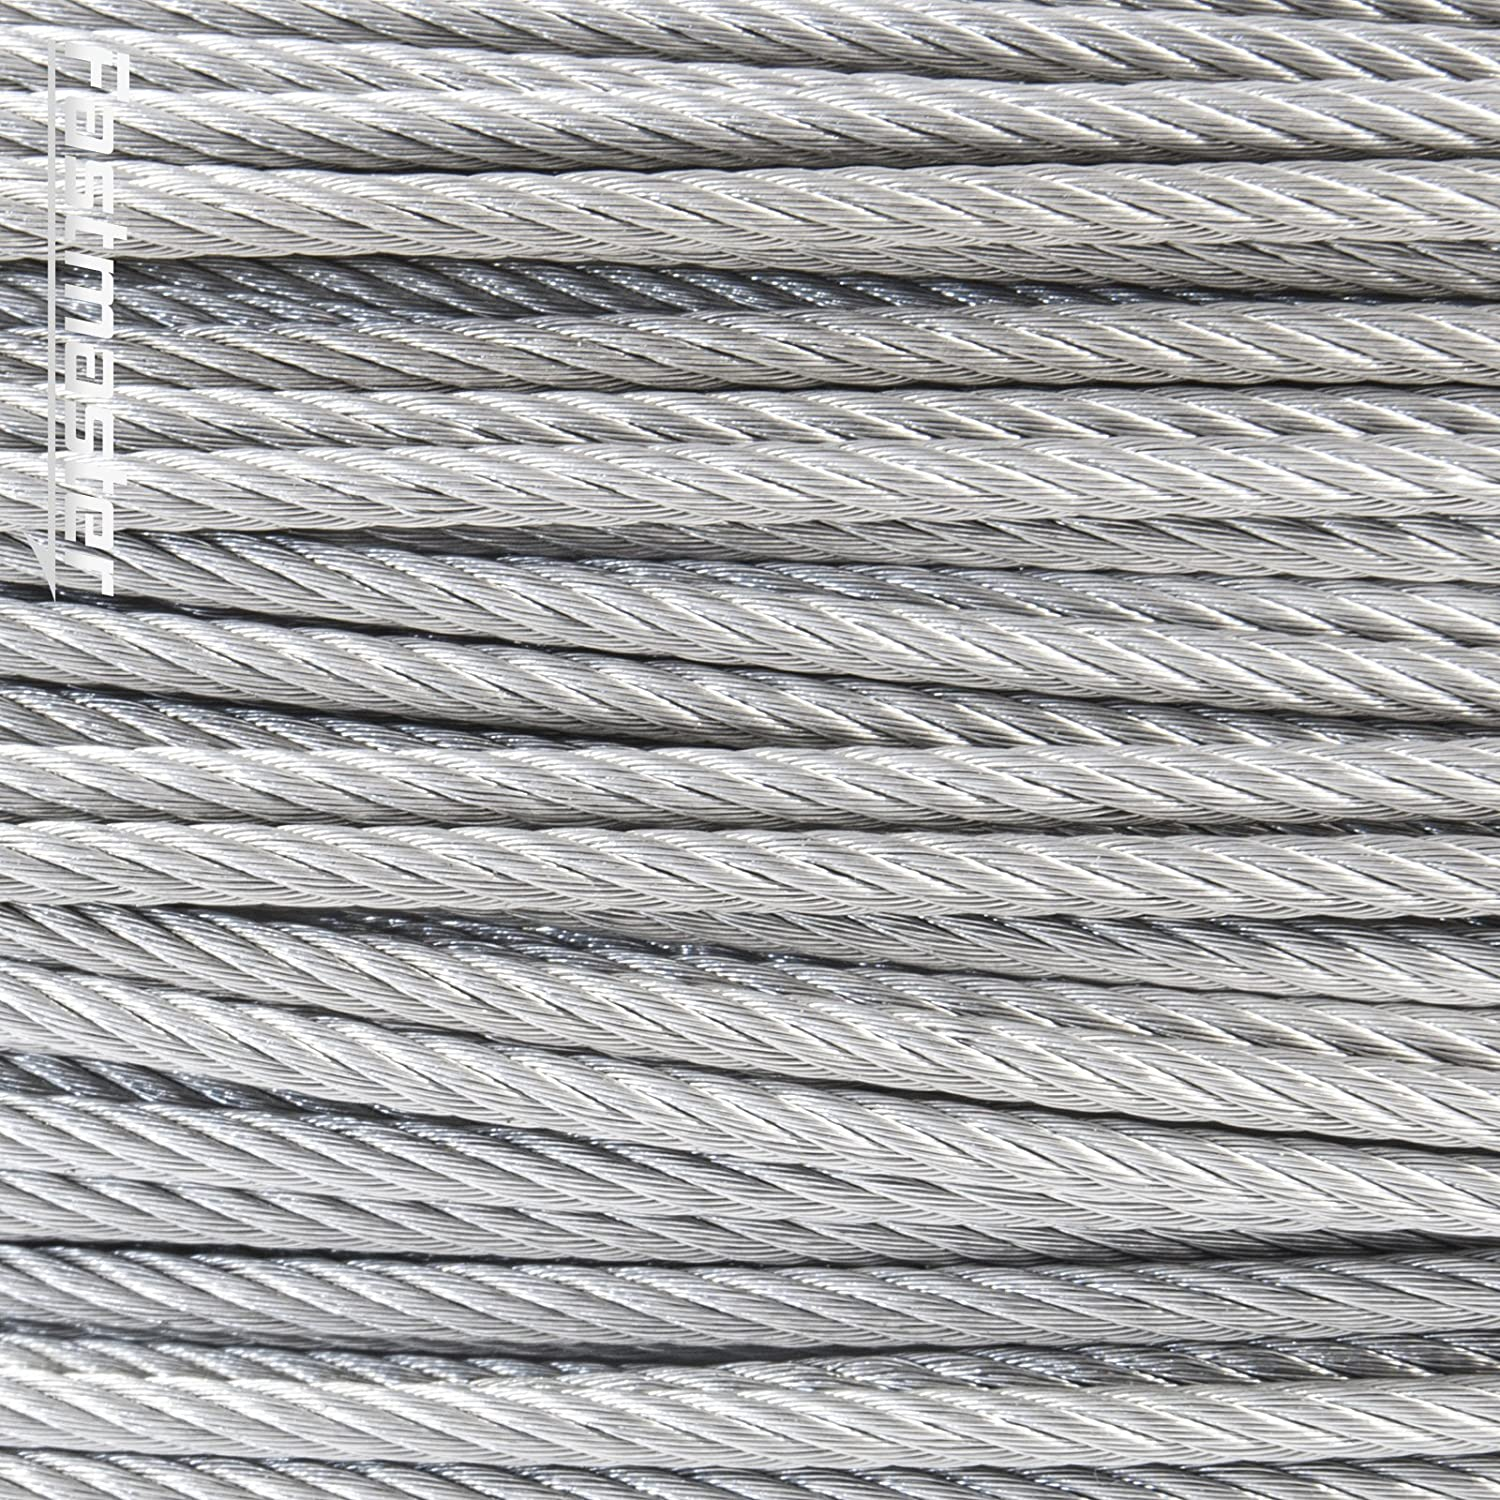 7x7 5 m stainless steel wire rope cable 1 mm cordage Strand